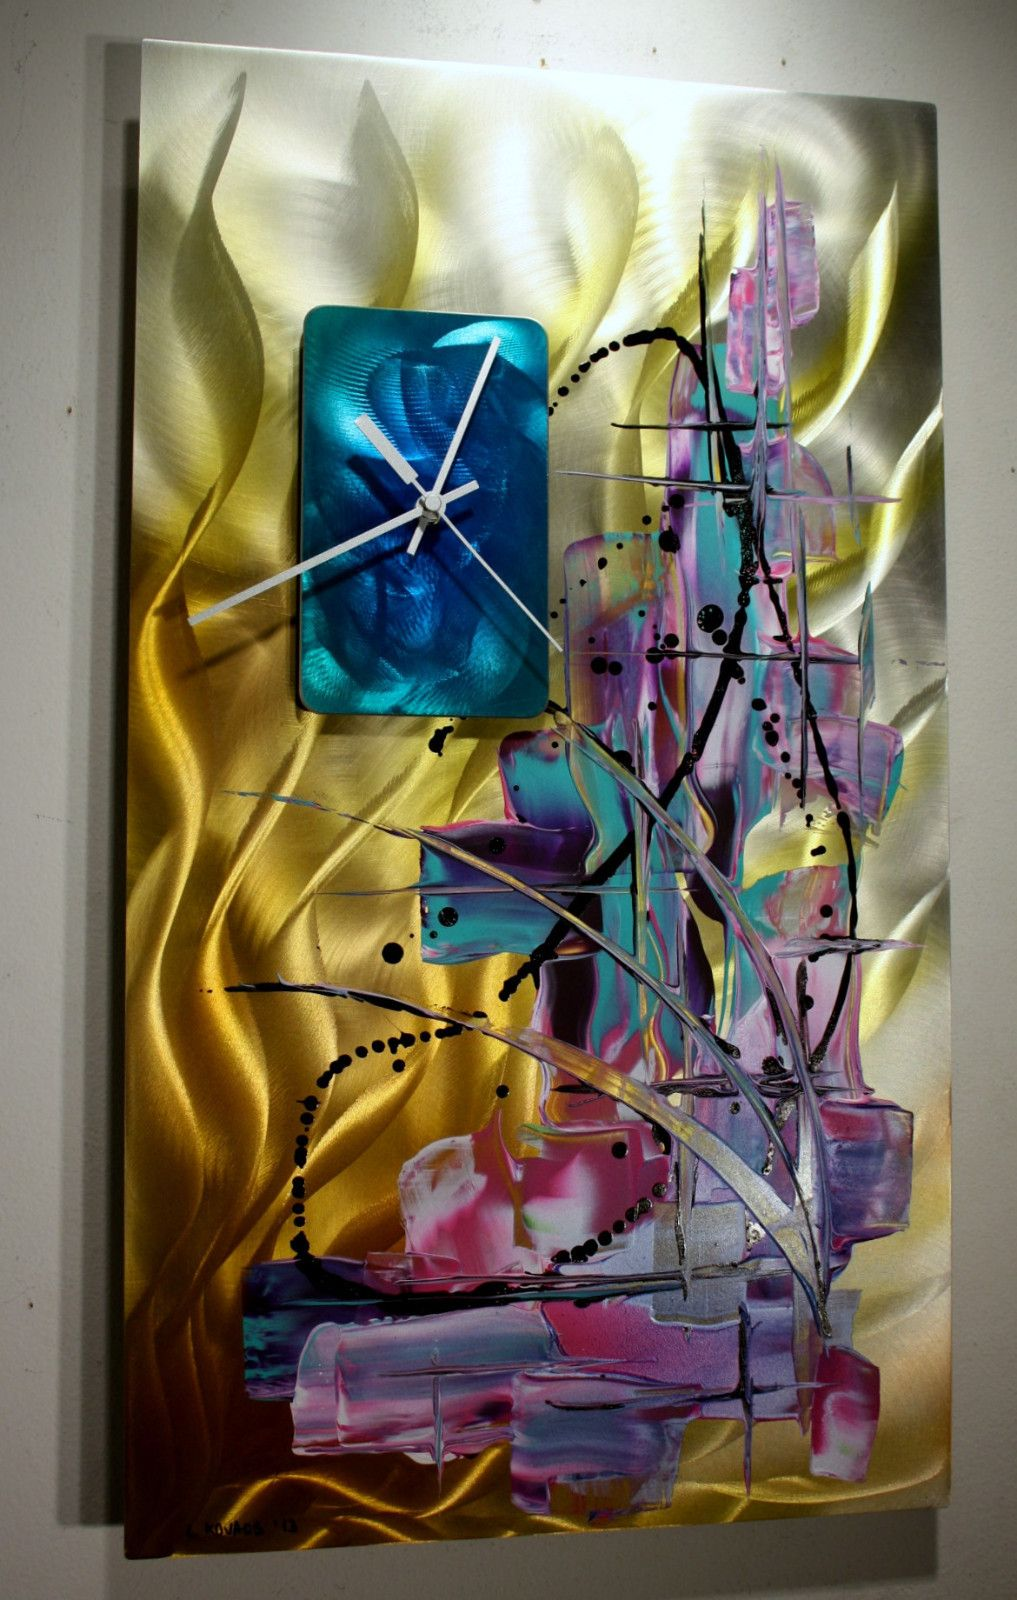 Metal wall art sculpture clock modern abstract painting decor linda kovacs k63 linda kovacs